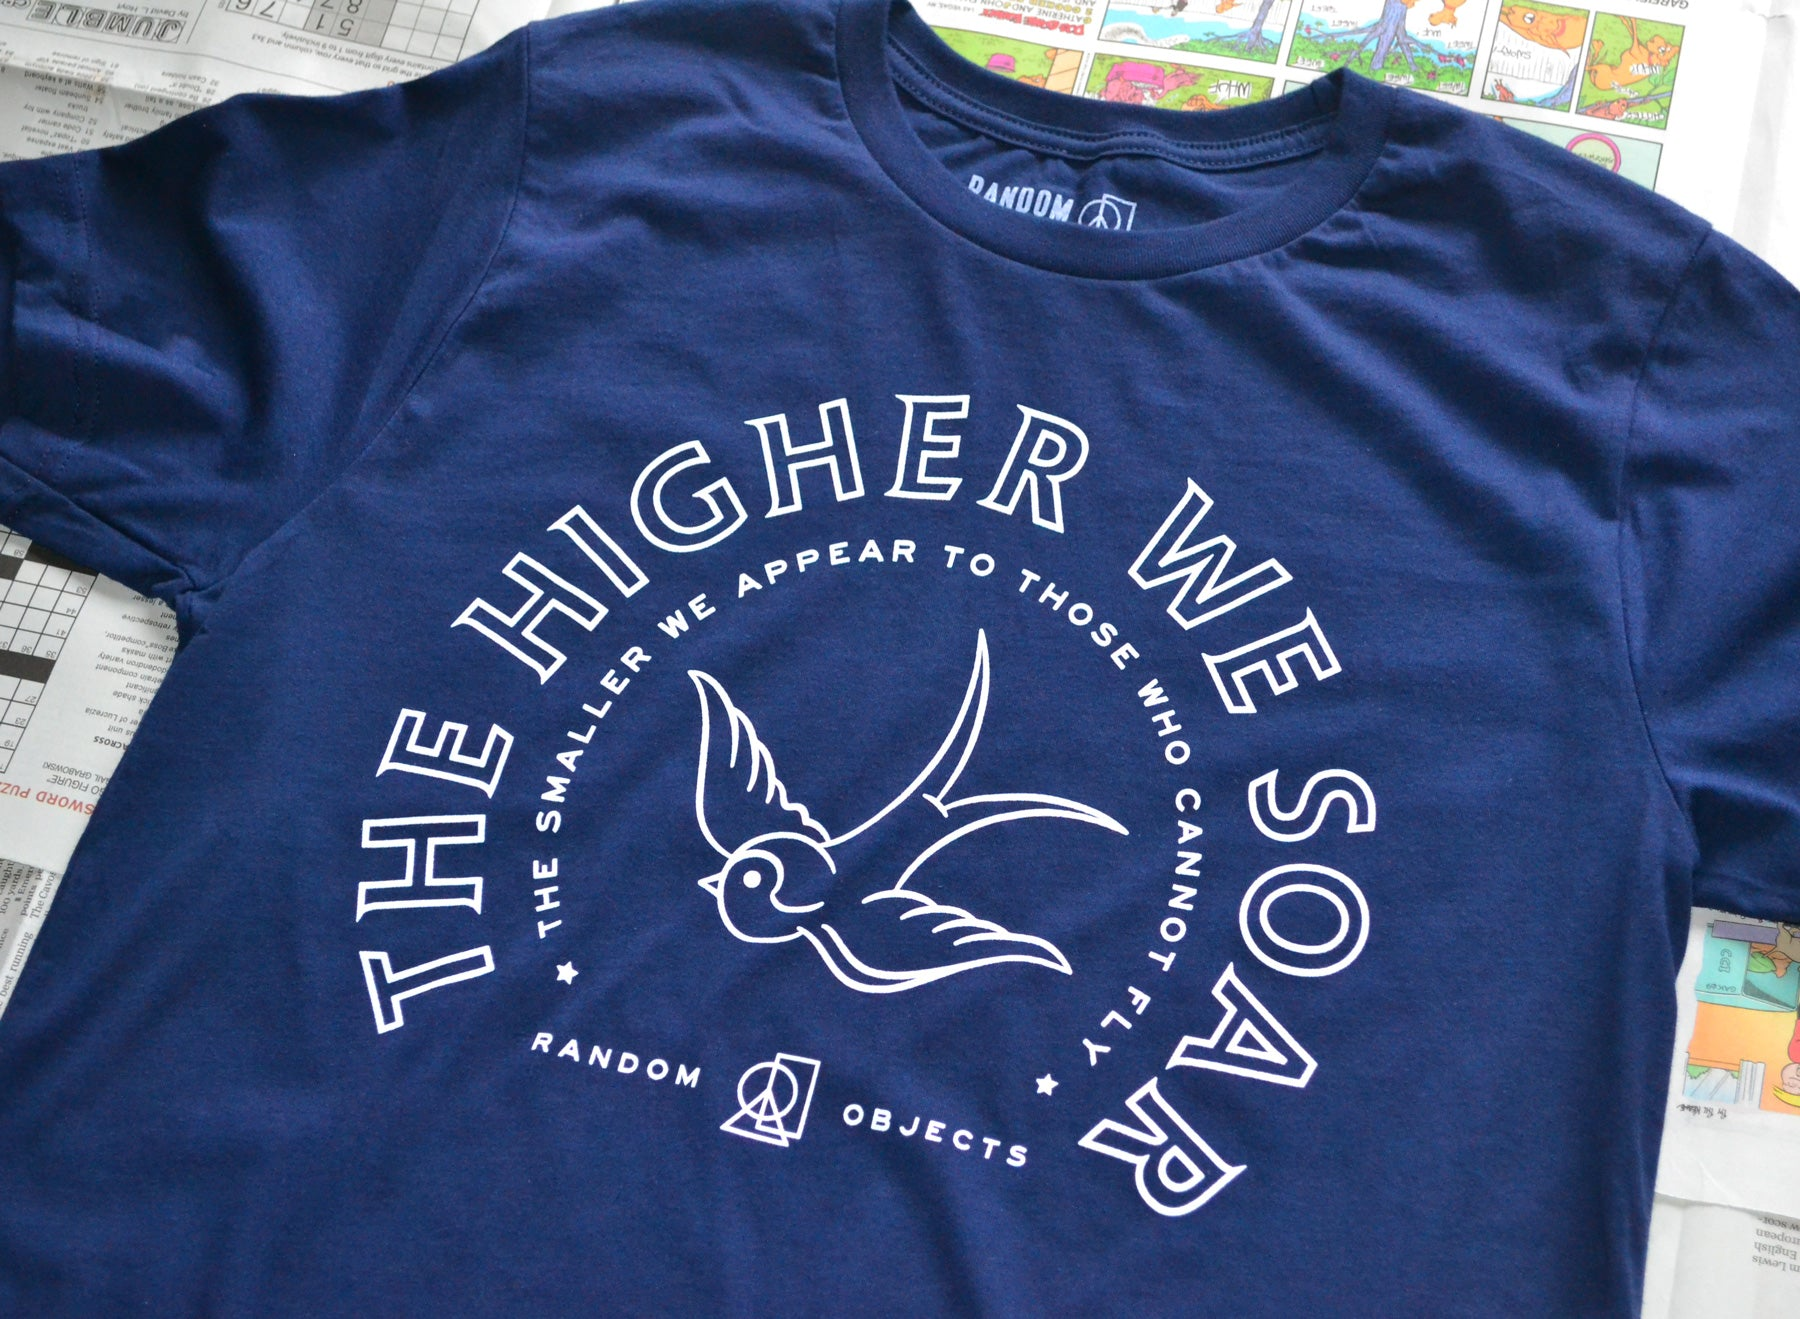 THE HIGHER WE SOAR